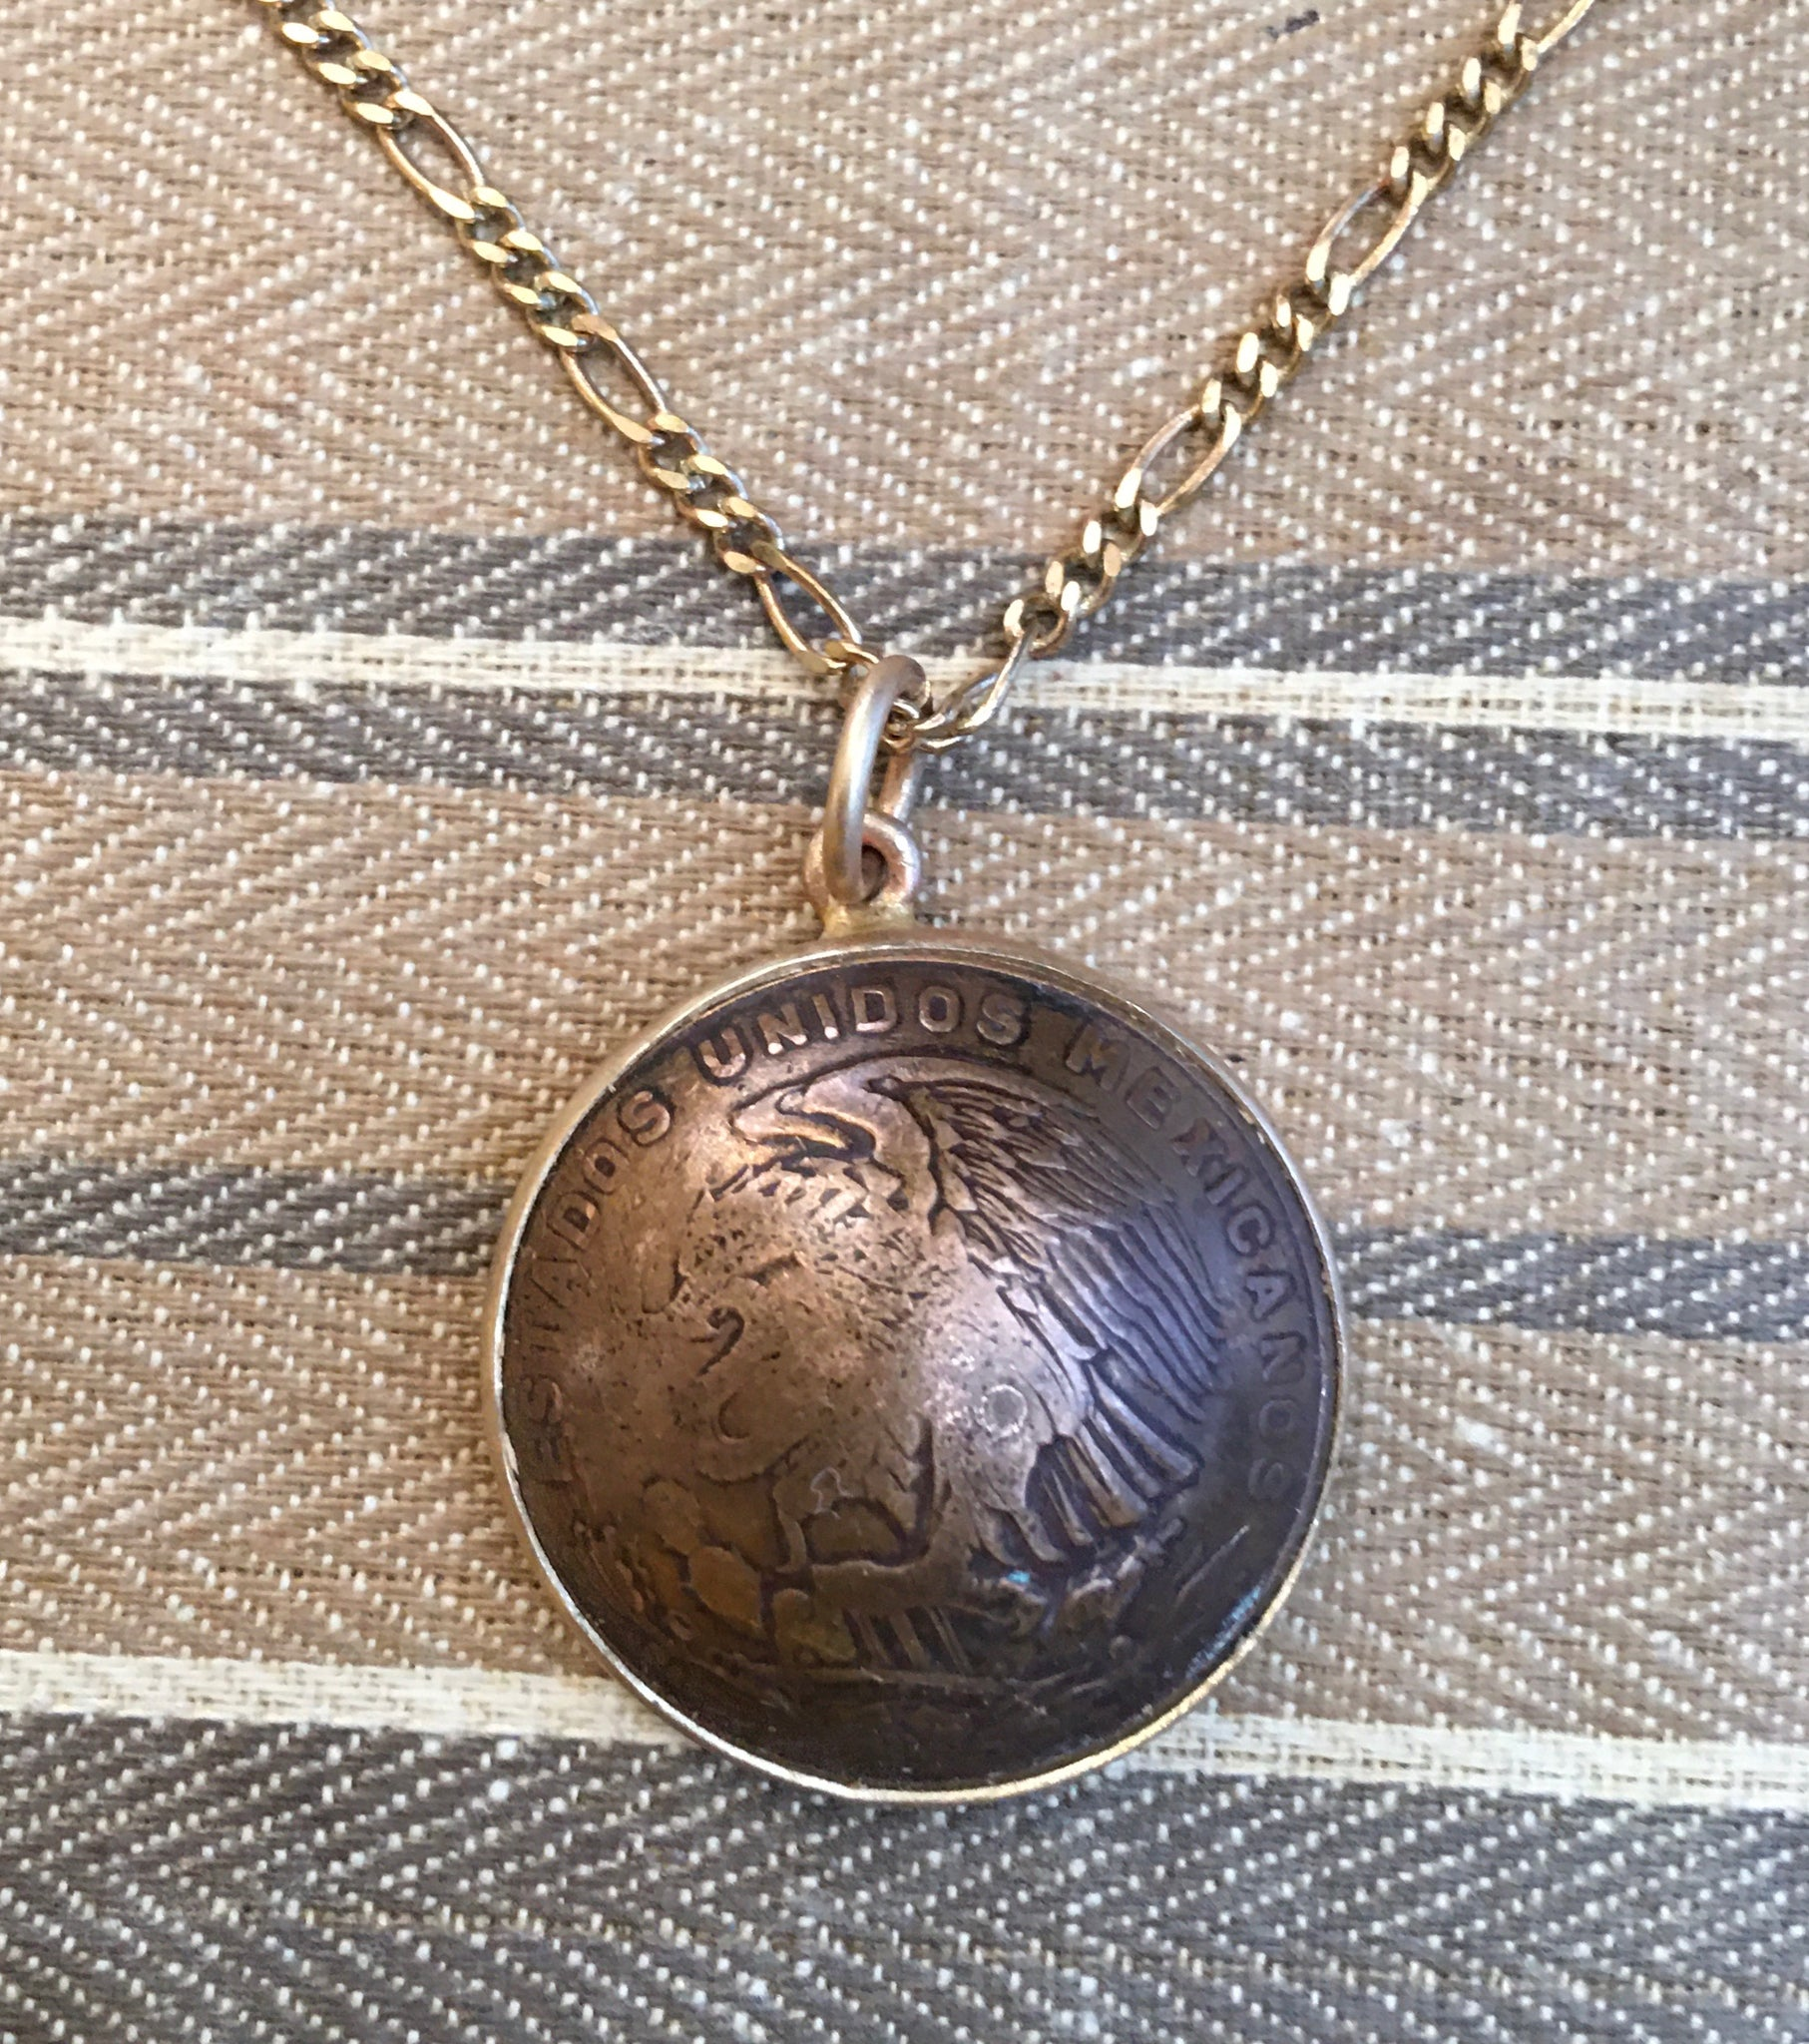 Killer antique Mexican domed coin